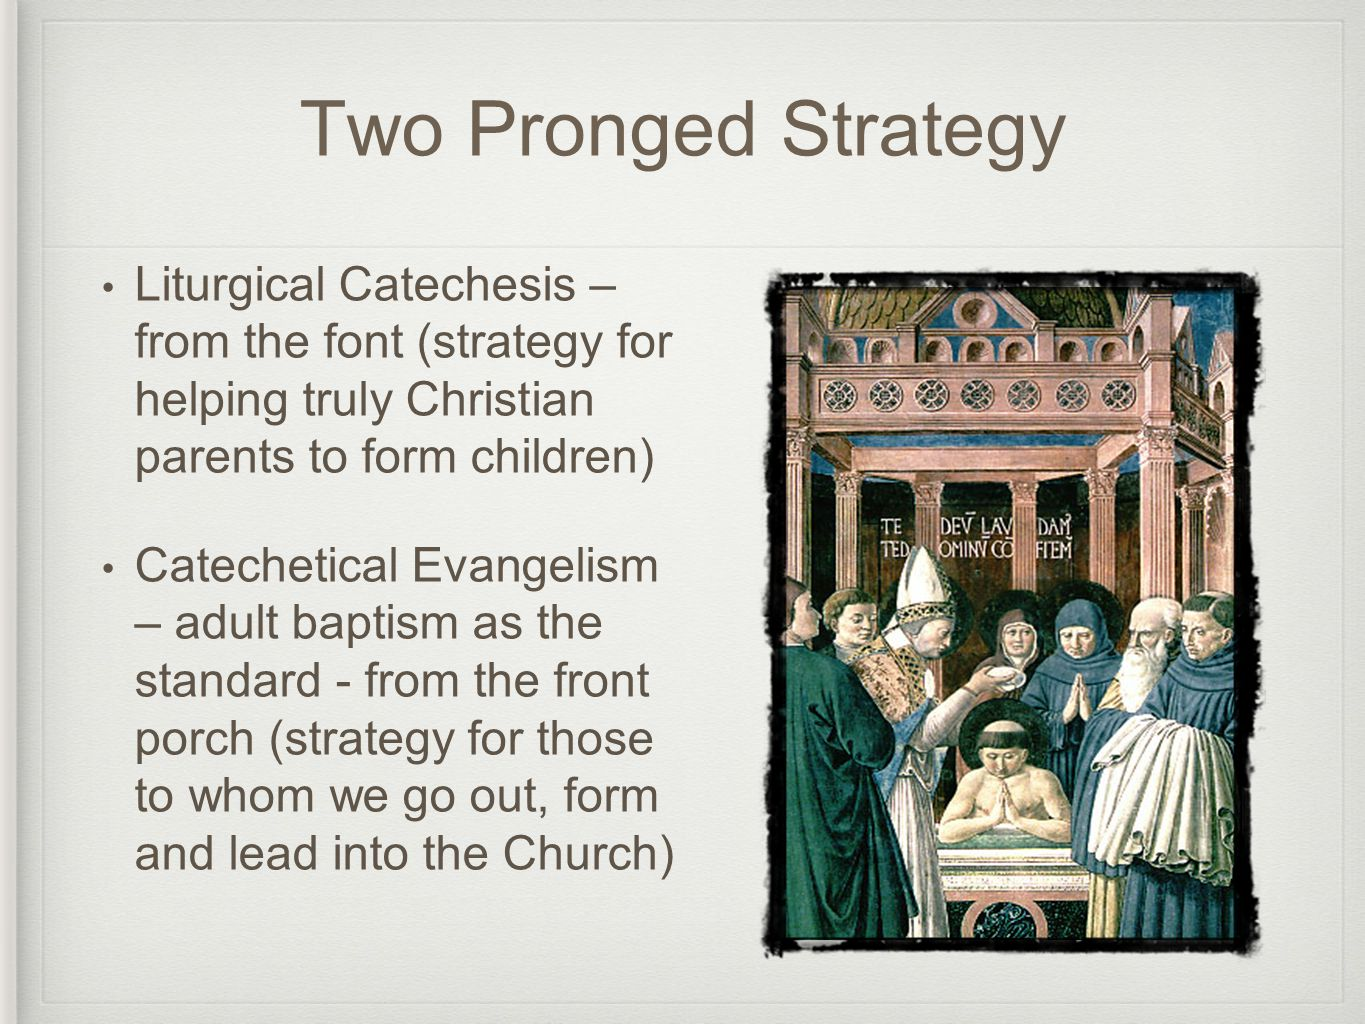 Two Pronged Strategy Liturgical Catechesis – from the font (strategy for helping truly Christian parents to form children) Catechetical Evangelism – adult baptism as the standard - from the front porch (strategy for those to whom we go out, form and lead into the Church)